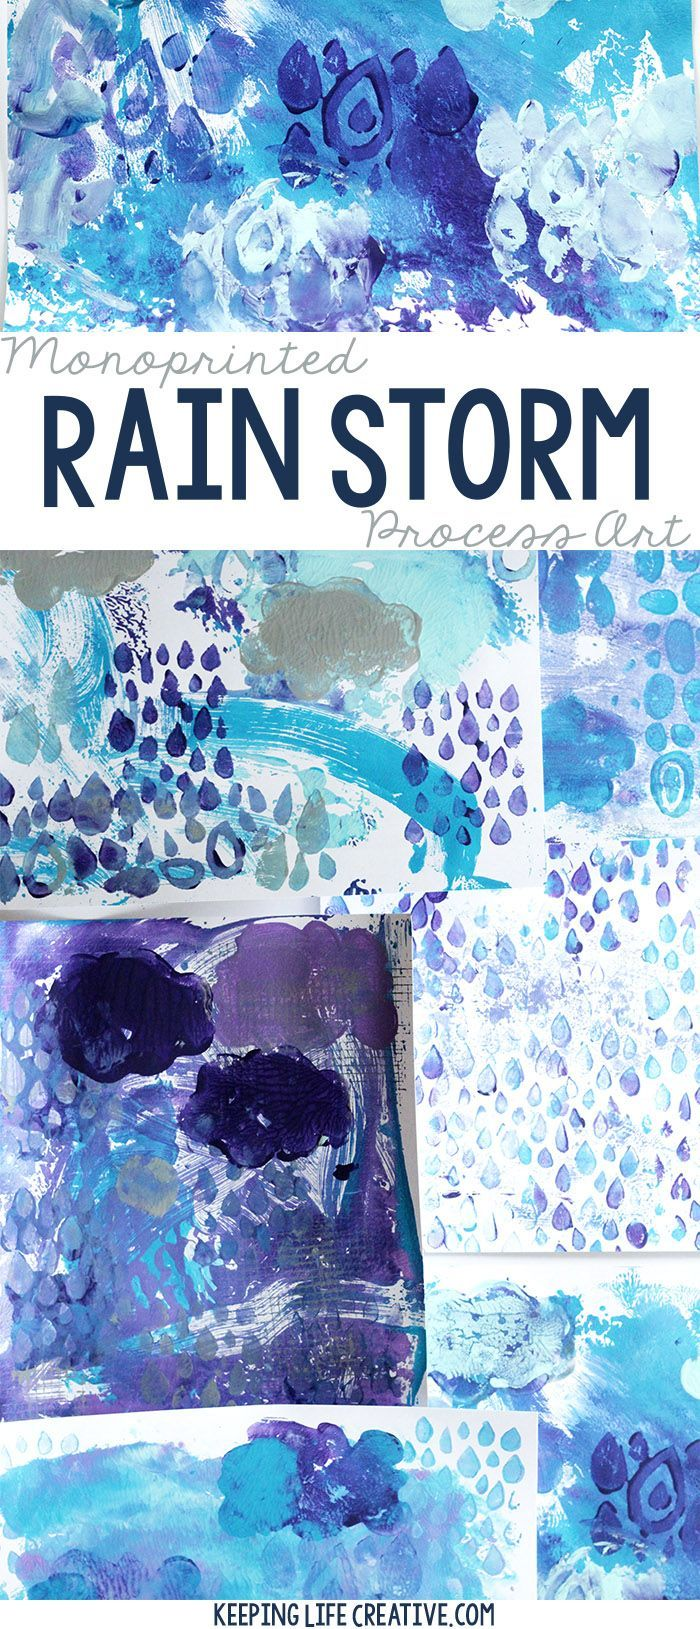 Create a monoprinted rain storm with this fun process art project. Simple step-by-step directions show how easy it can be to create a seasonal version like this rain storm art, or adapt the project to make it your own.